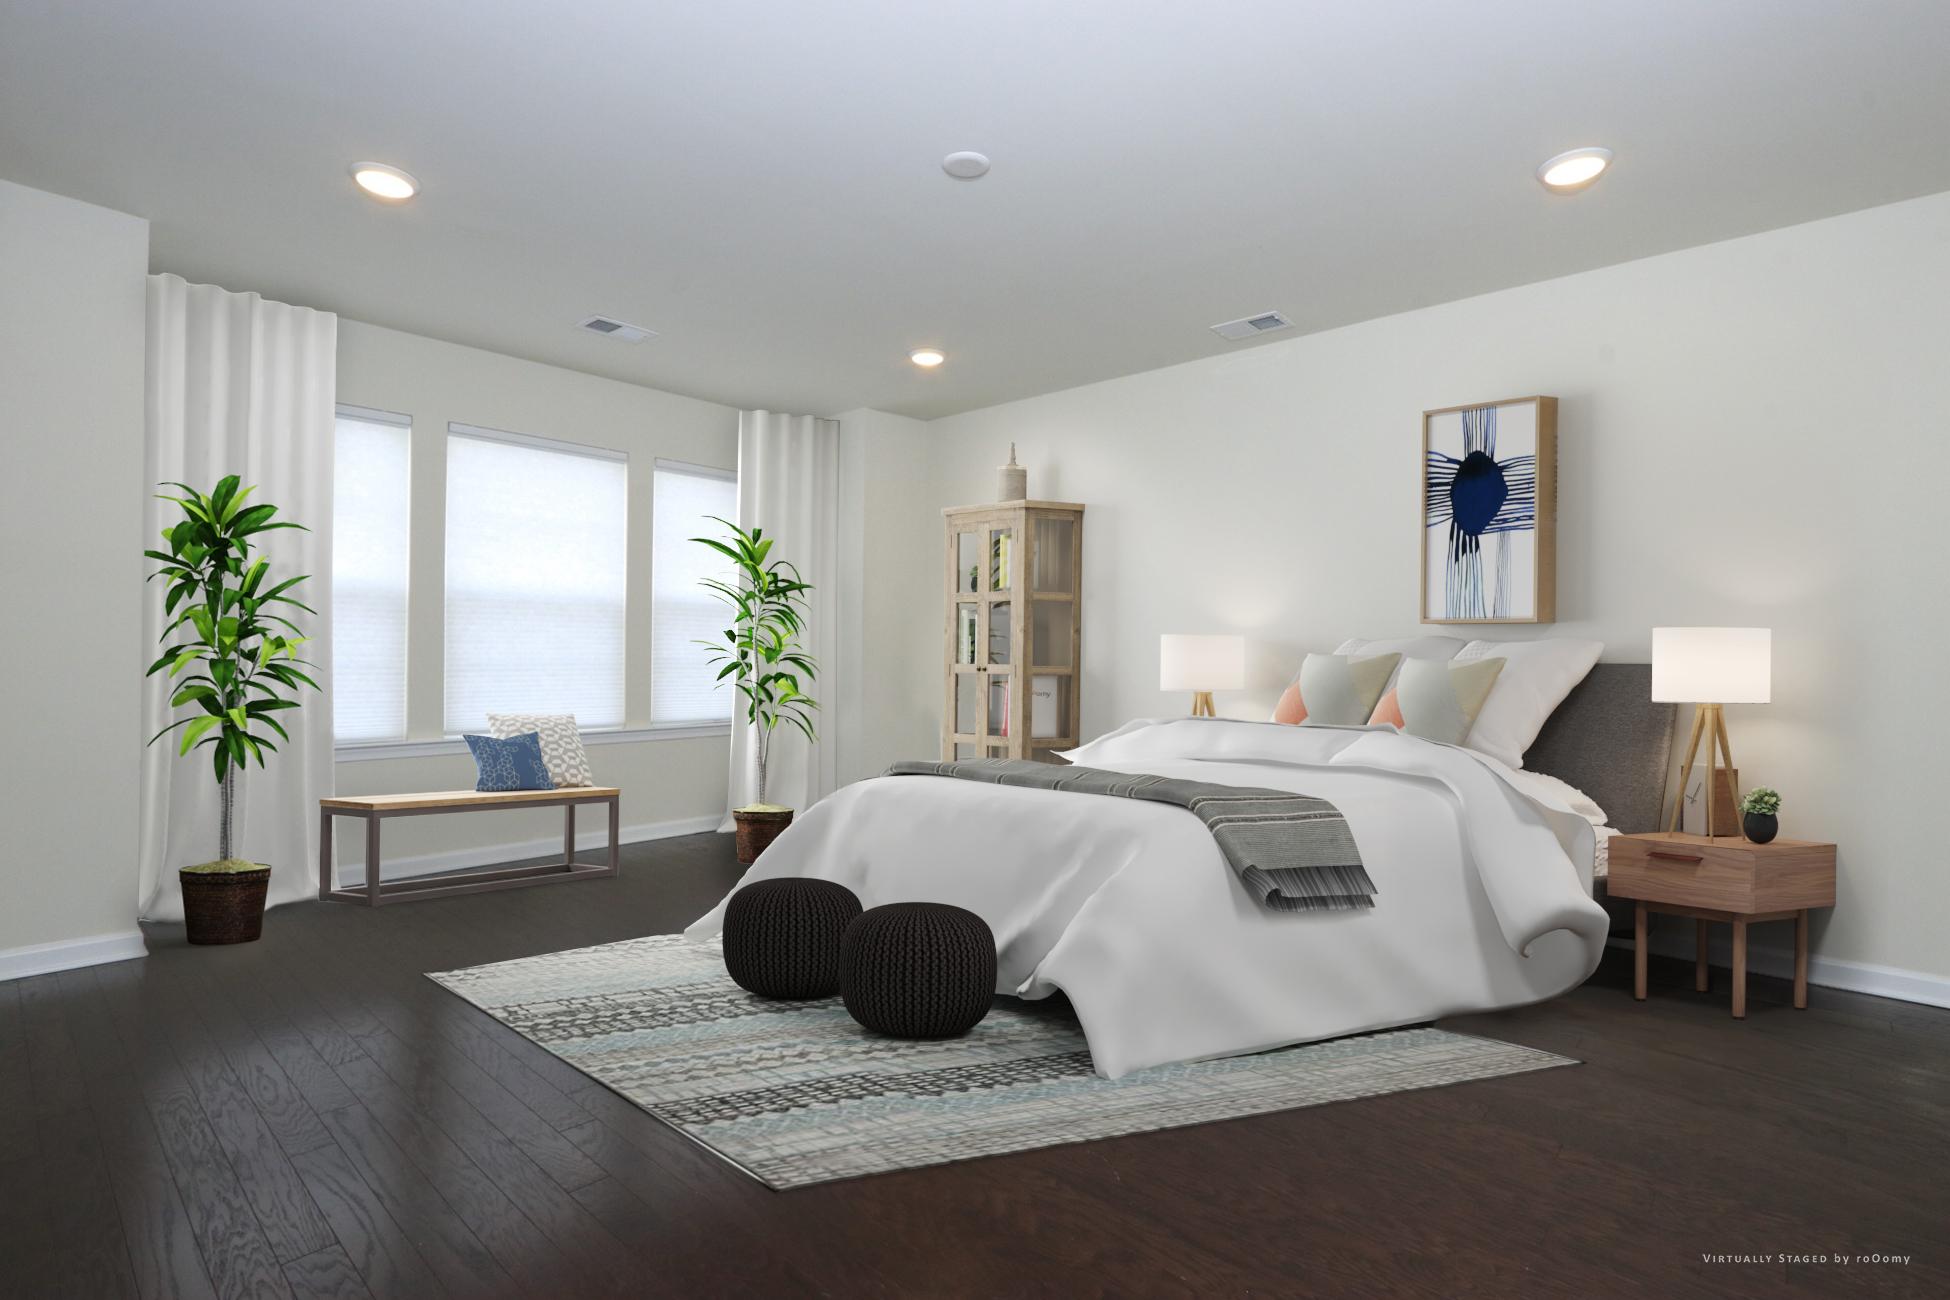 Bedroom - Scandinavian_Render.jpg